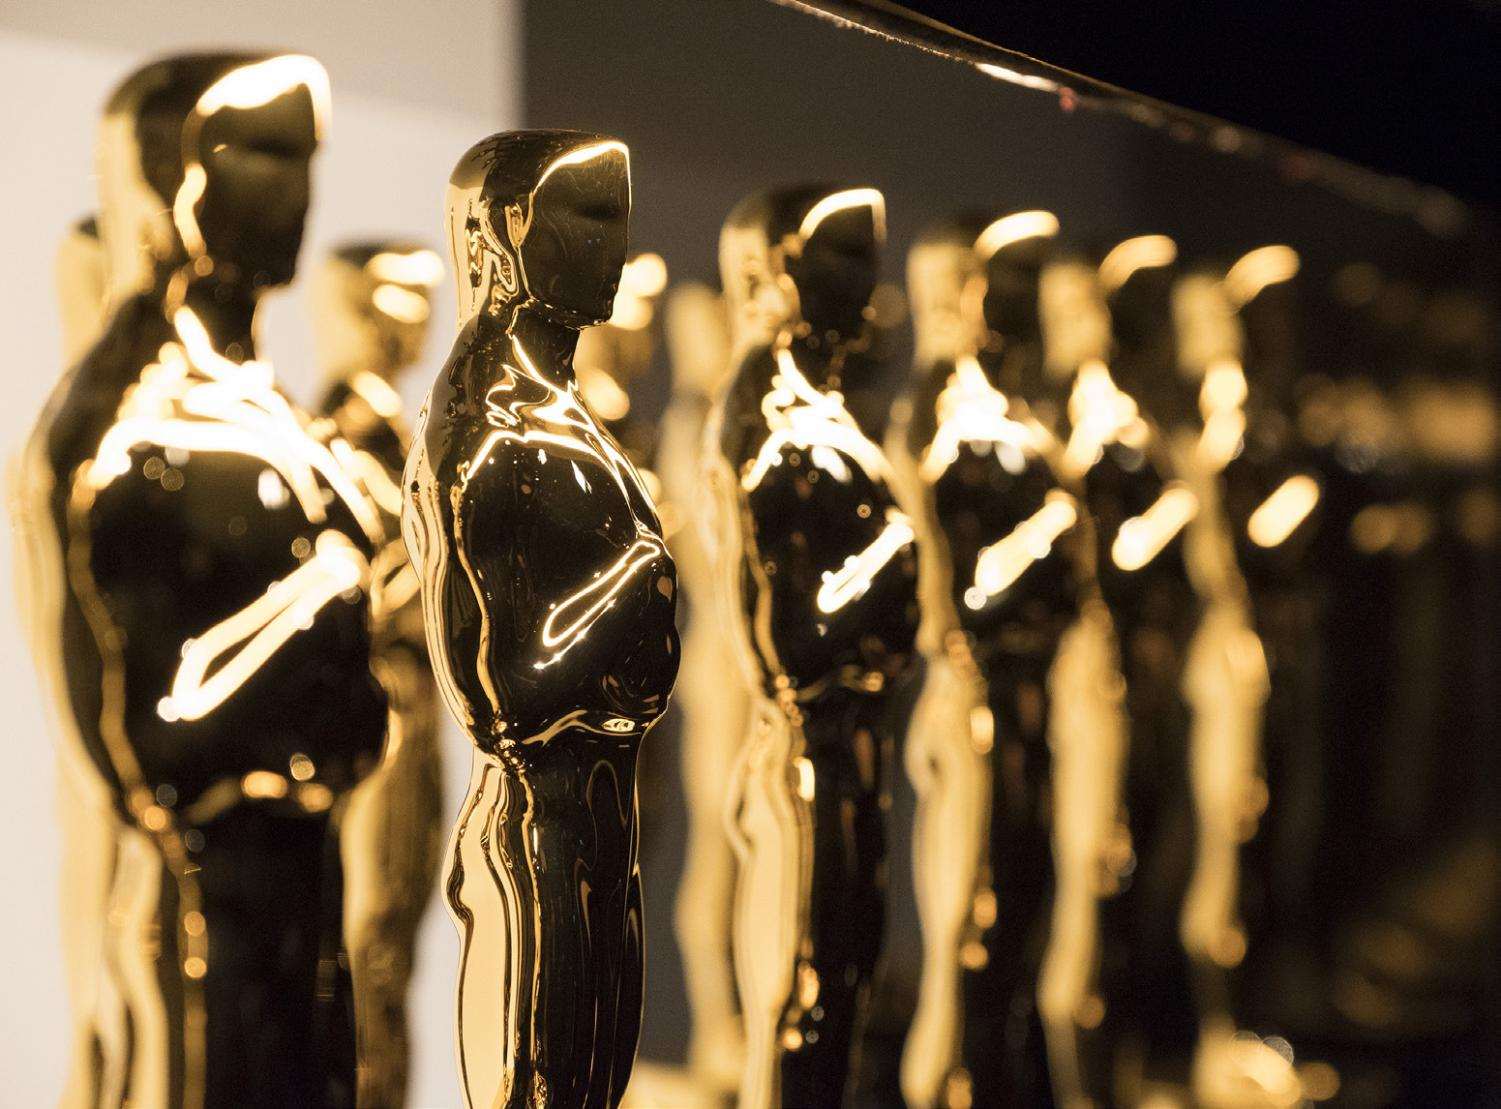 The Academy Awards have a long standing controversy of whitewashing nominations.